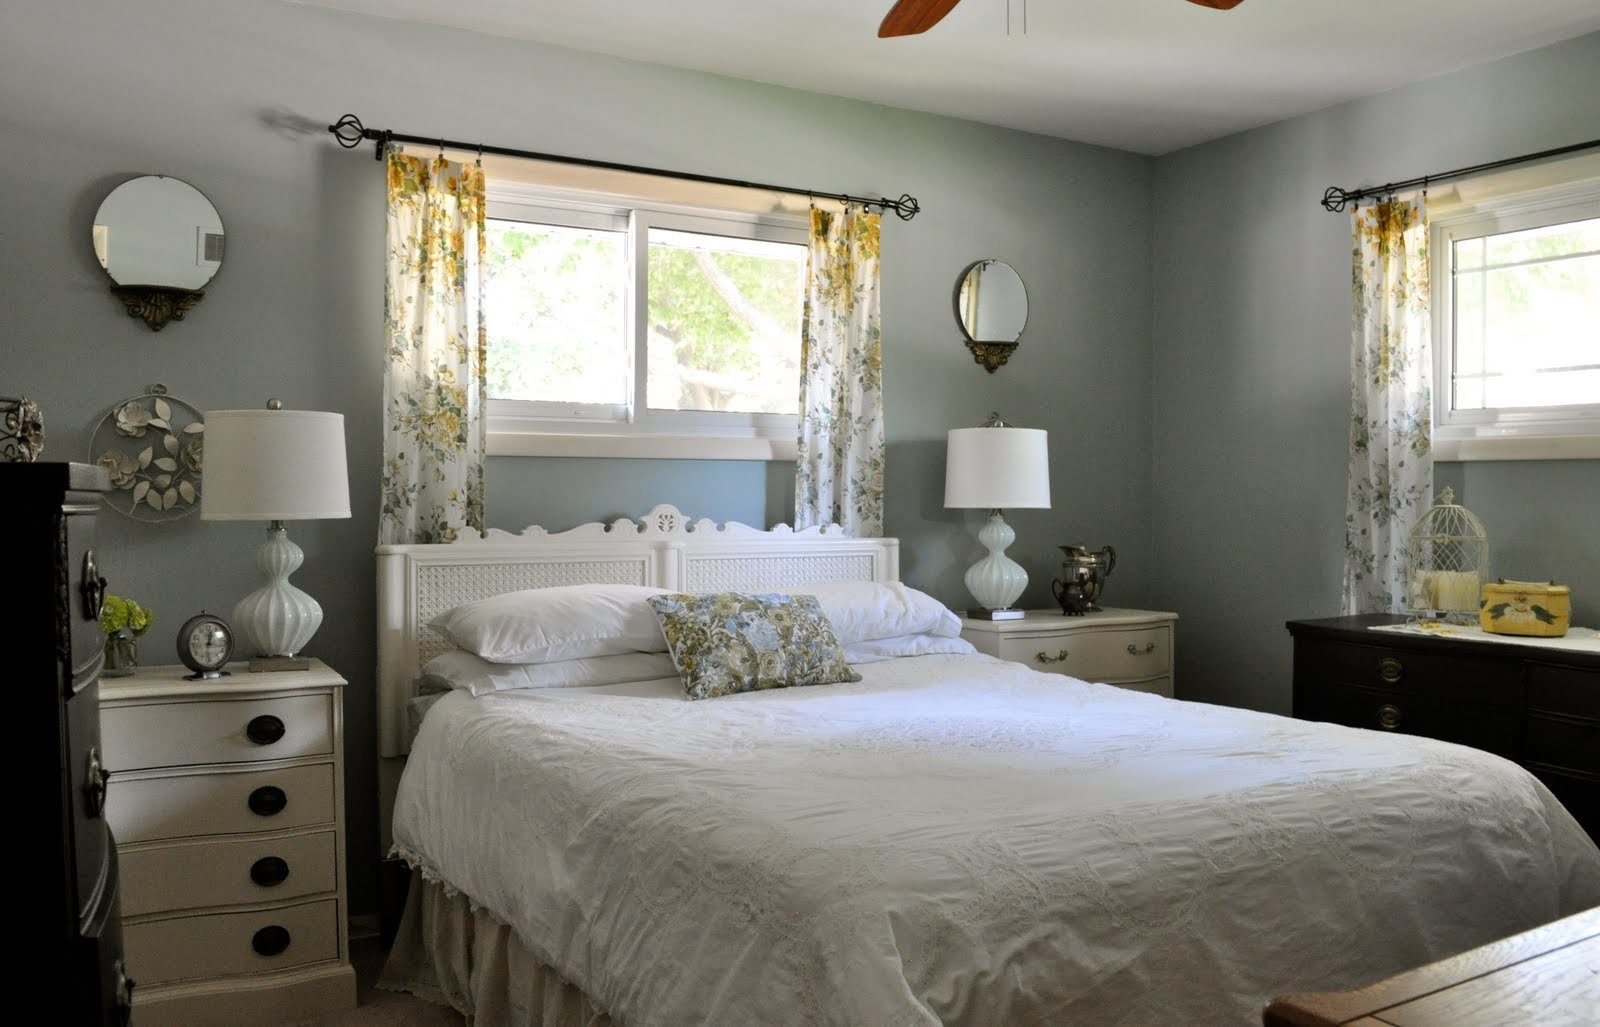 Best An Oldie But Goodie Bedroom Makeover Jennifer Rizzo With Pictures